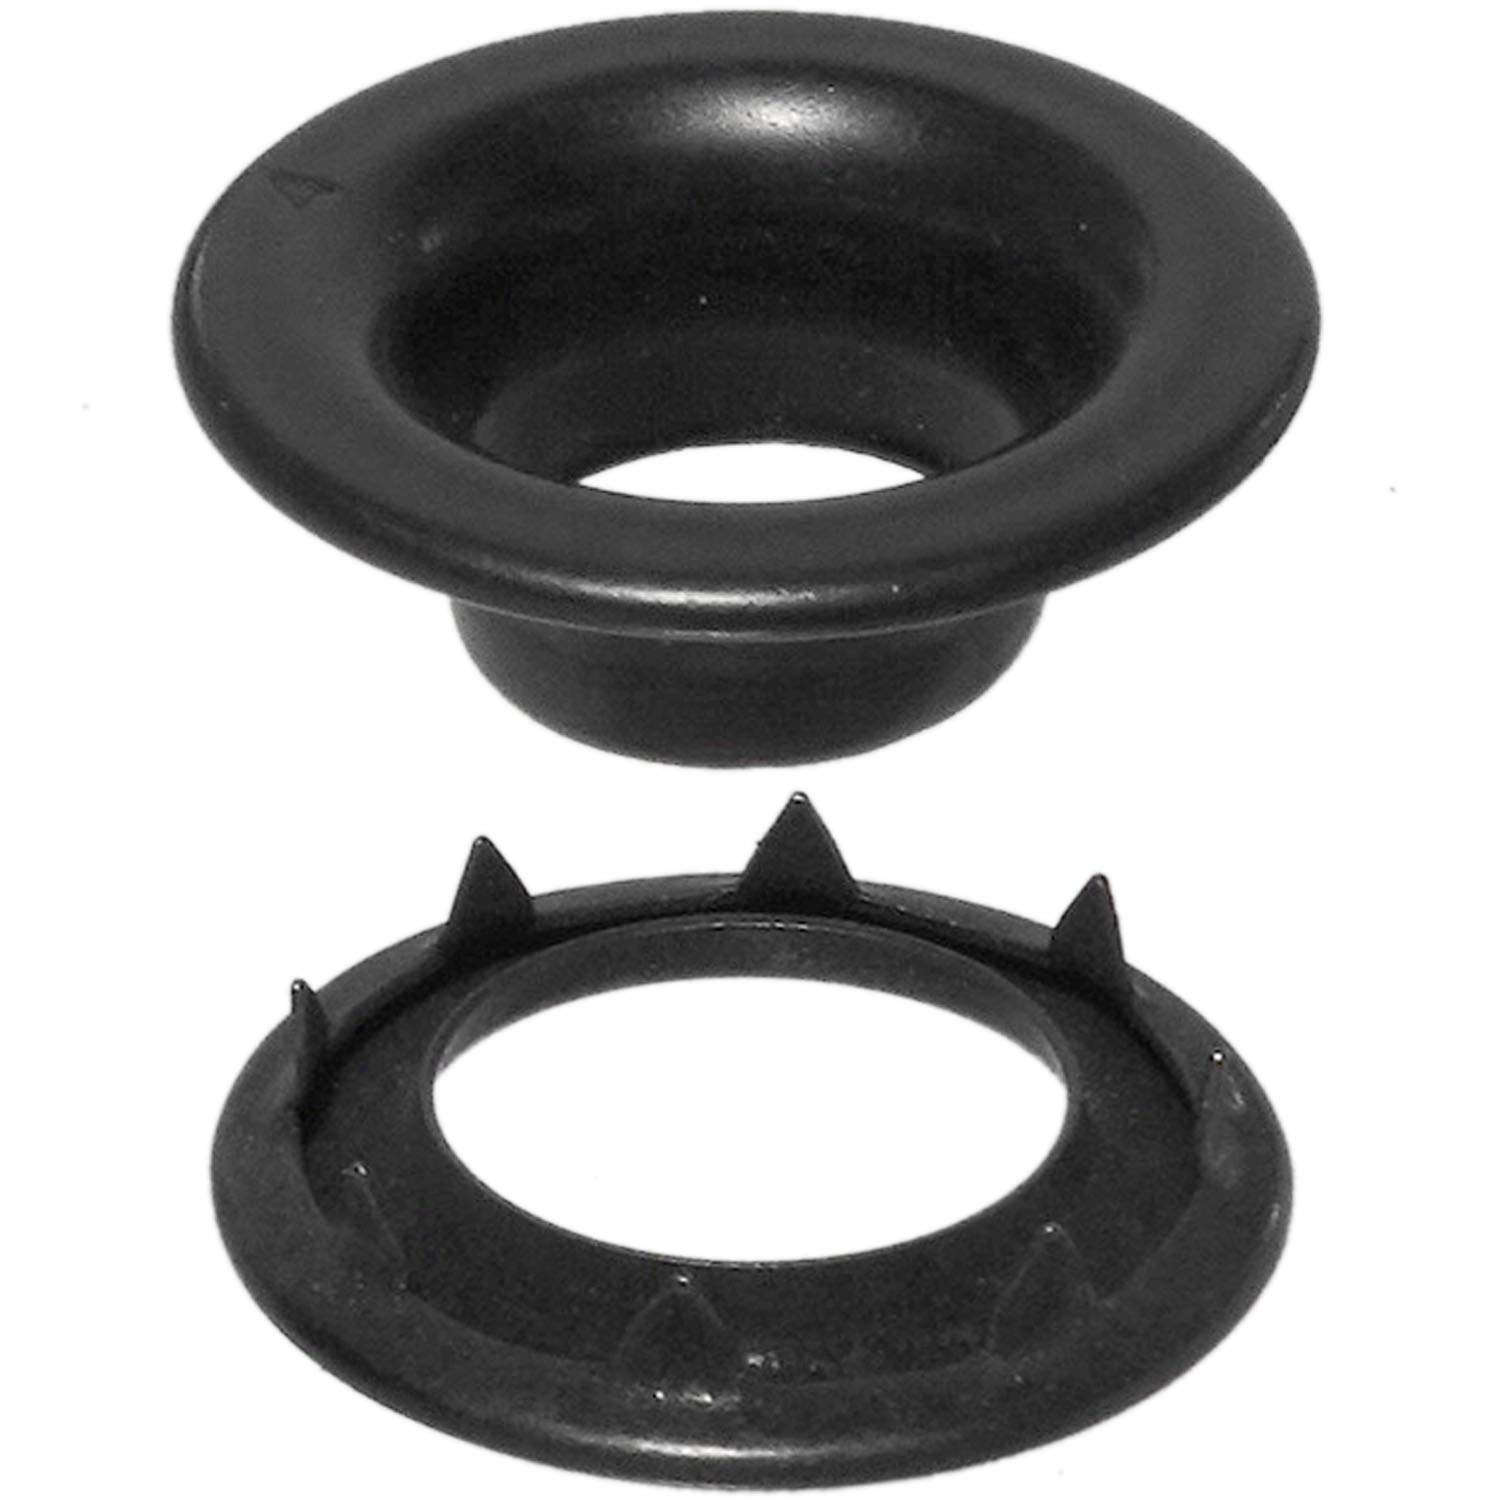 Stimpson Rolled Rim Grommet and Spur Washer Dull Black Chem Durable, Reliable, Heavy-Duty #4 Set (720 pieces of each)